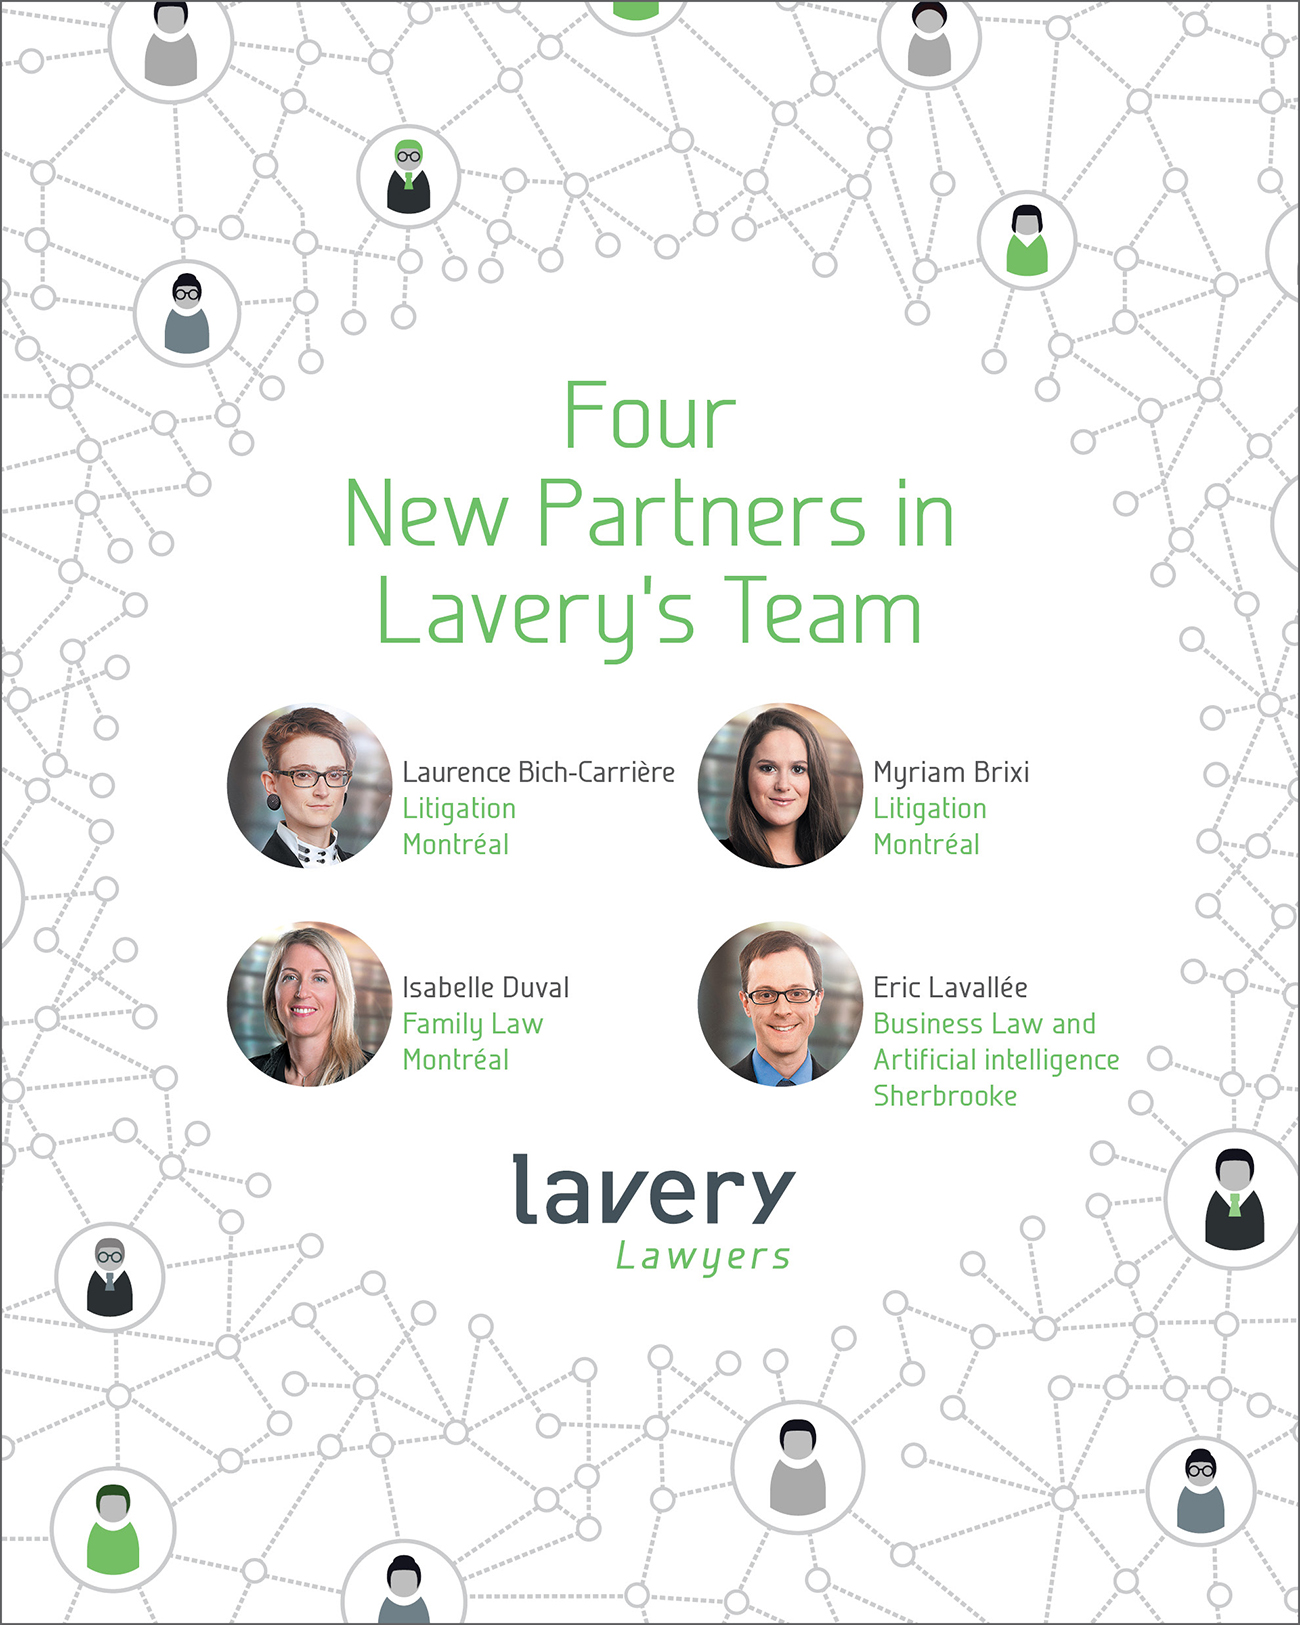 Four New Partners in Laverys Team